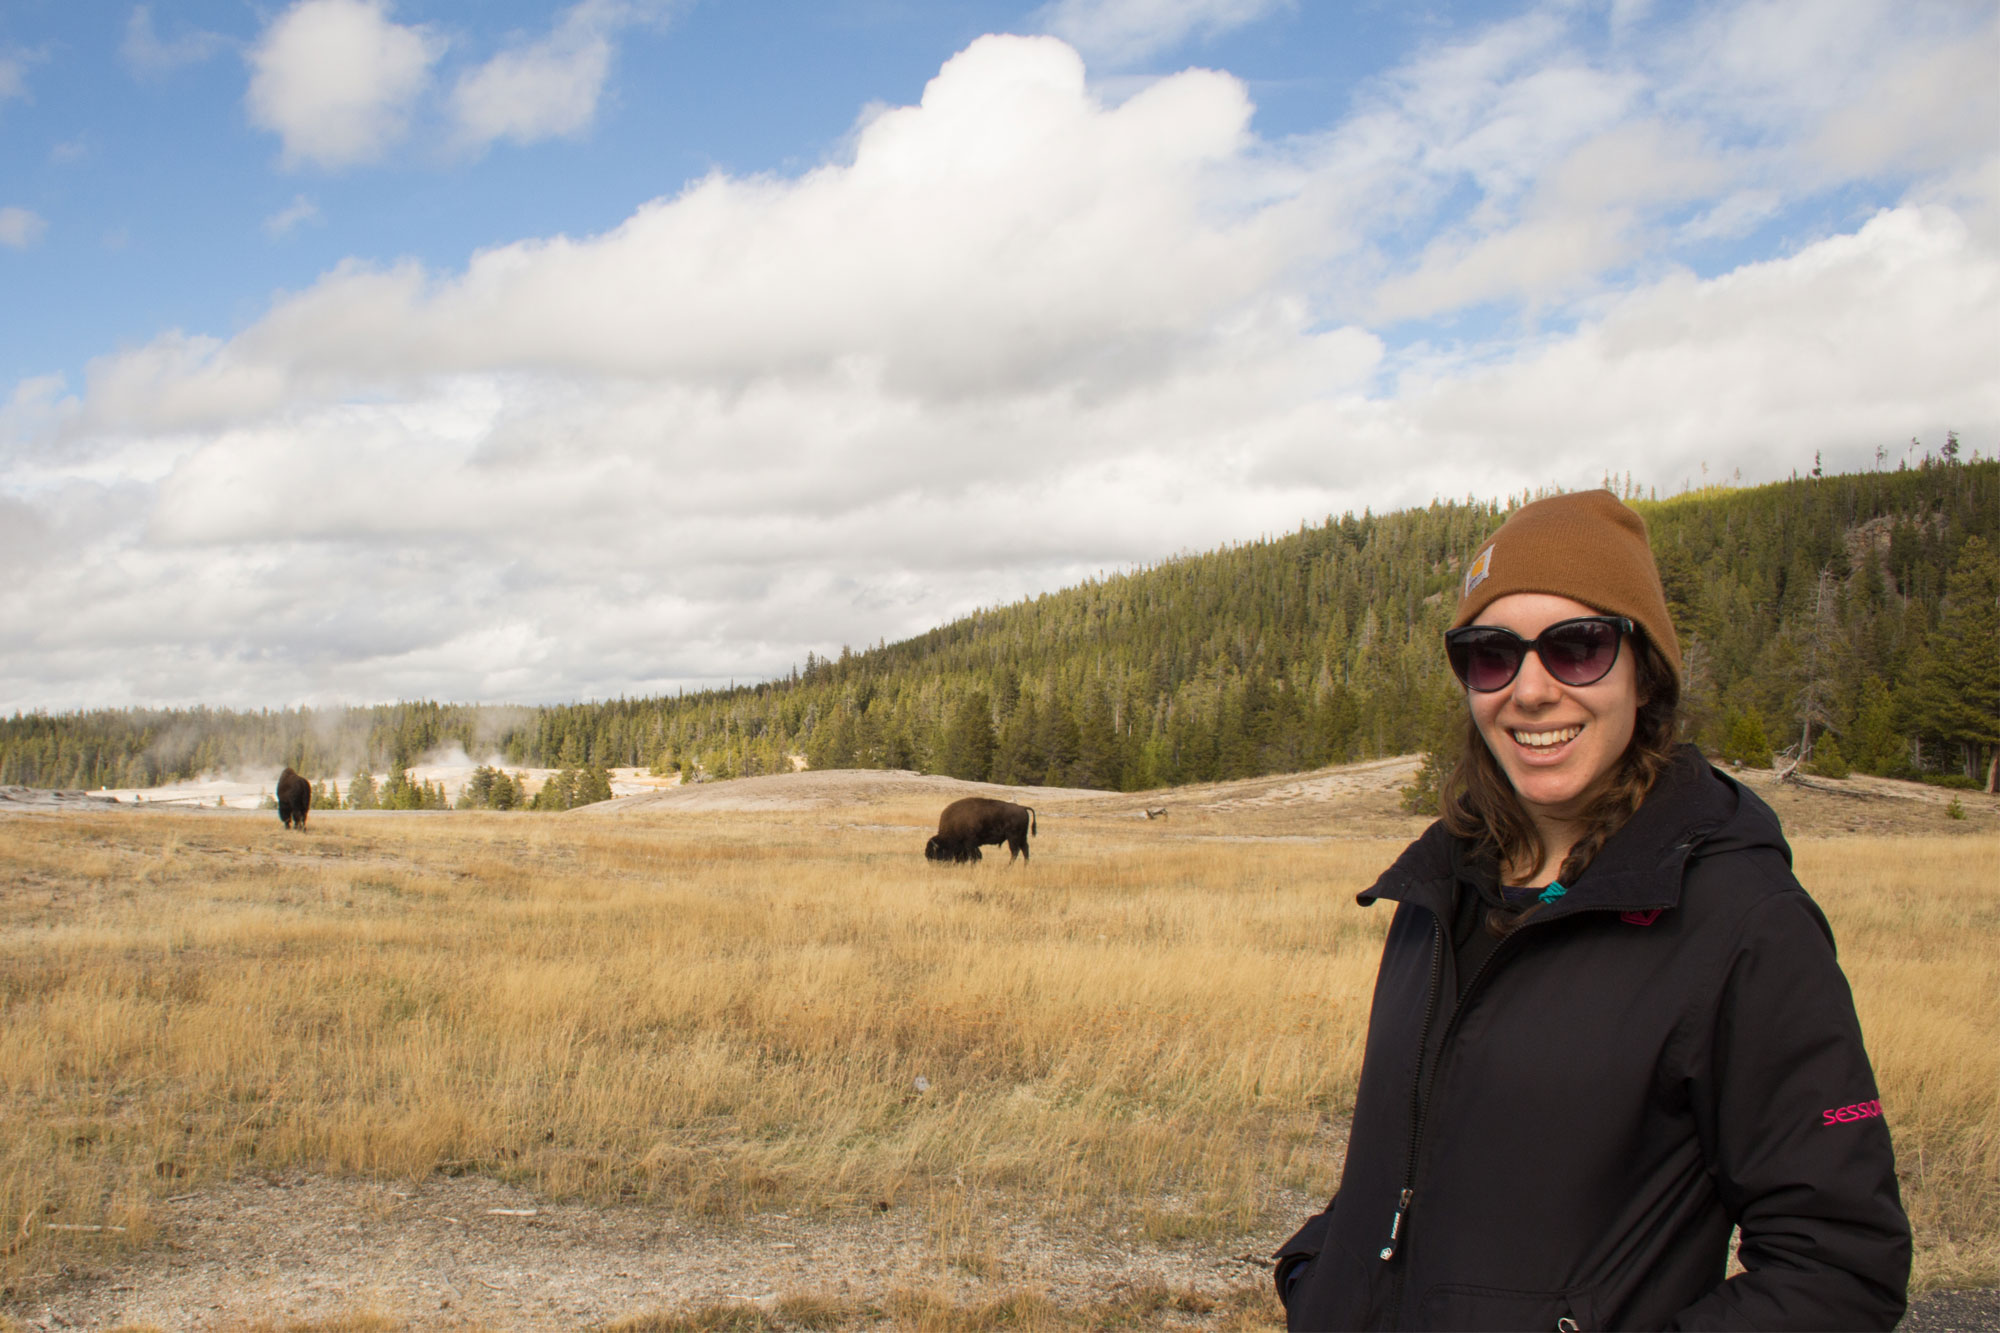 Amy at Old Faithful, Yellowstone National Park